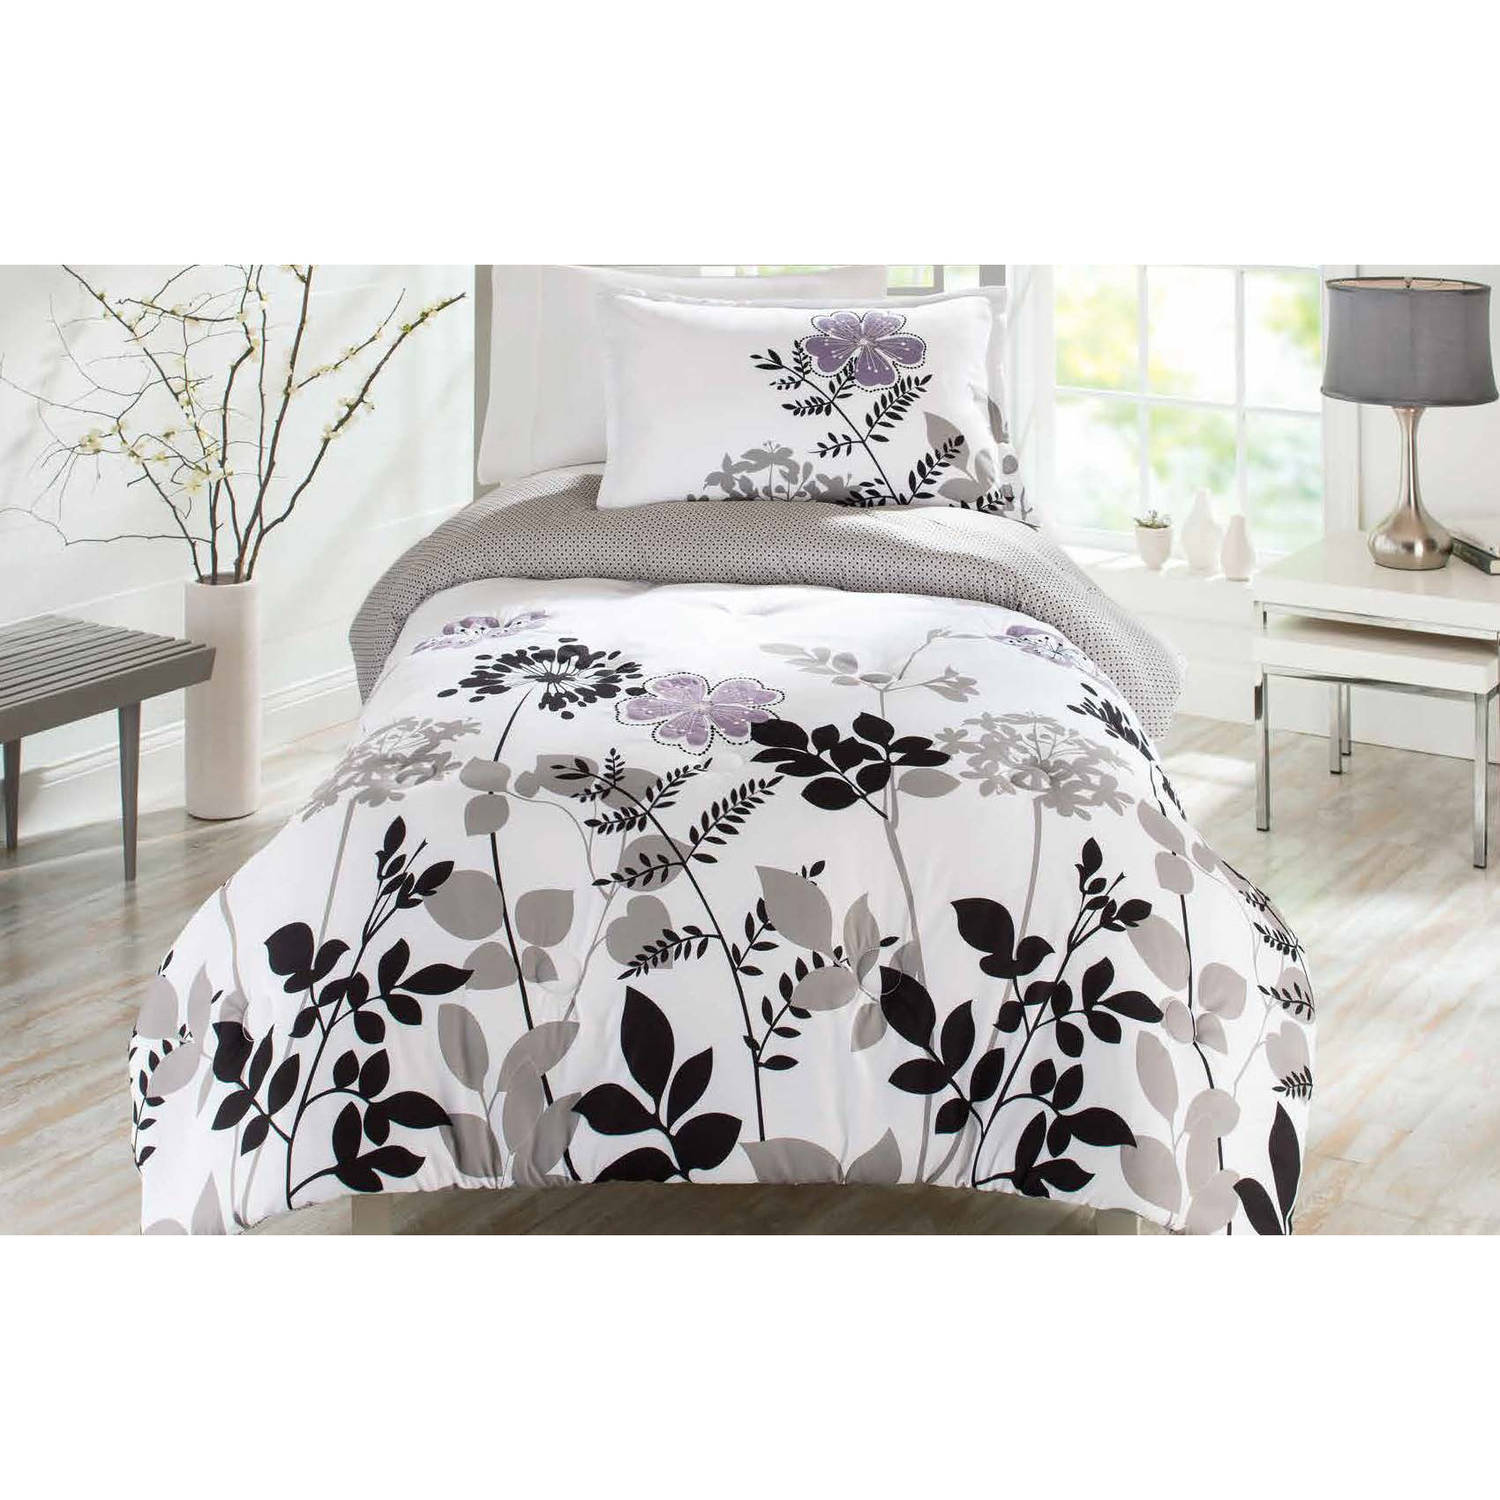 Better Homes and Gardens Comforter Set, Warm Plum Fauna